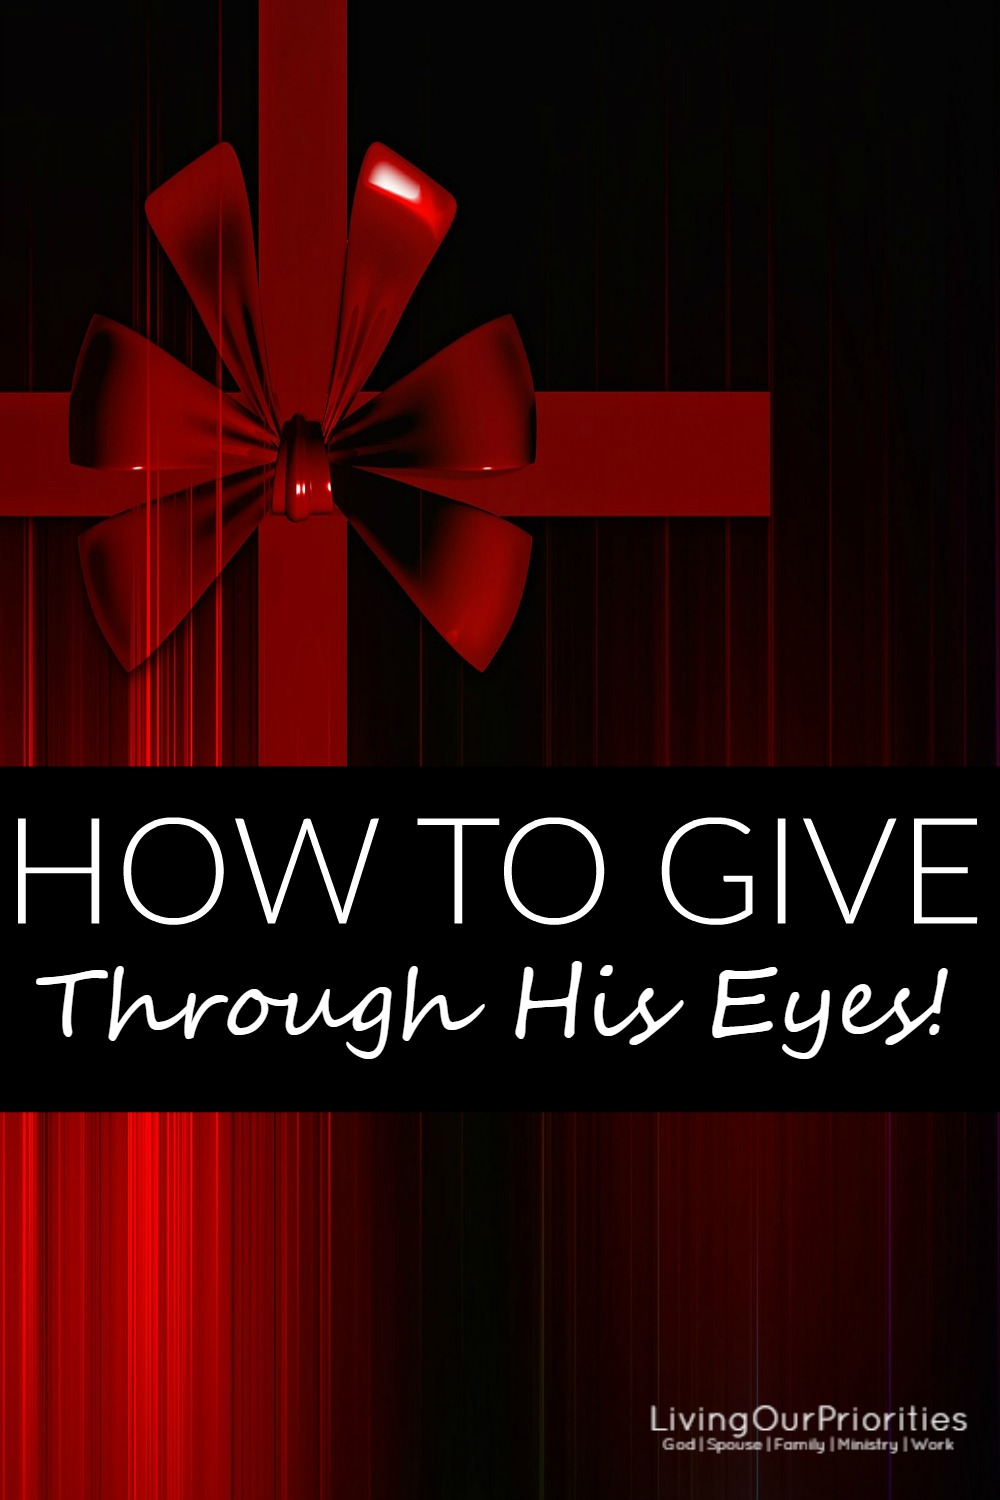 The gap between the haves and have not's is widening. So why don't we as believers change that perception, by giving to others through our Father's eyes.